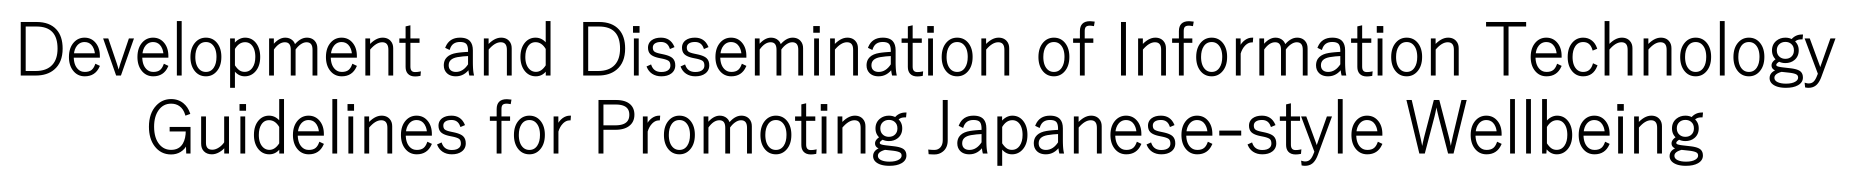 Promoting Japanese-style Wellbeing